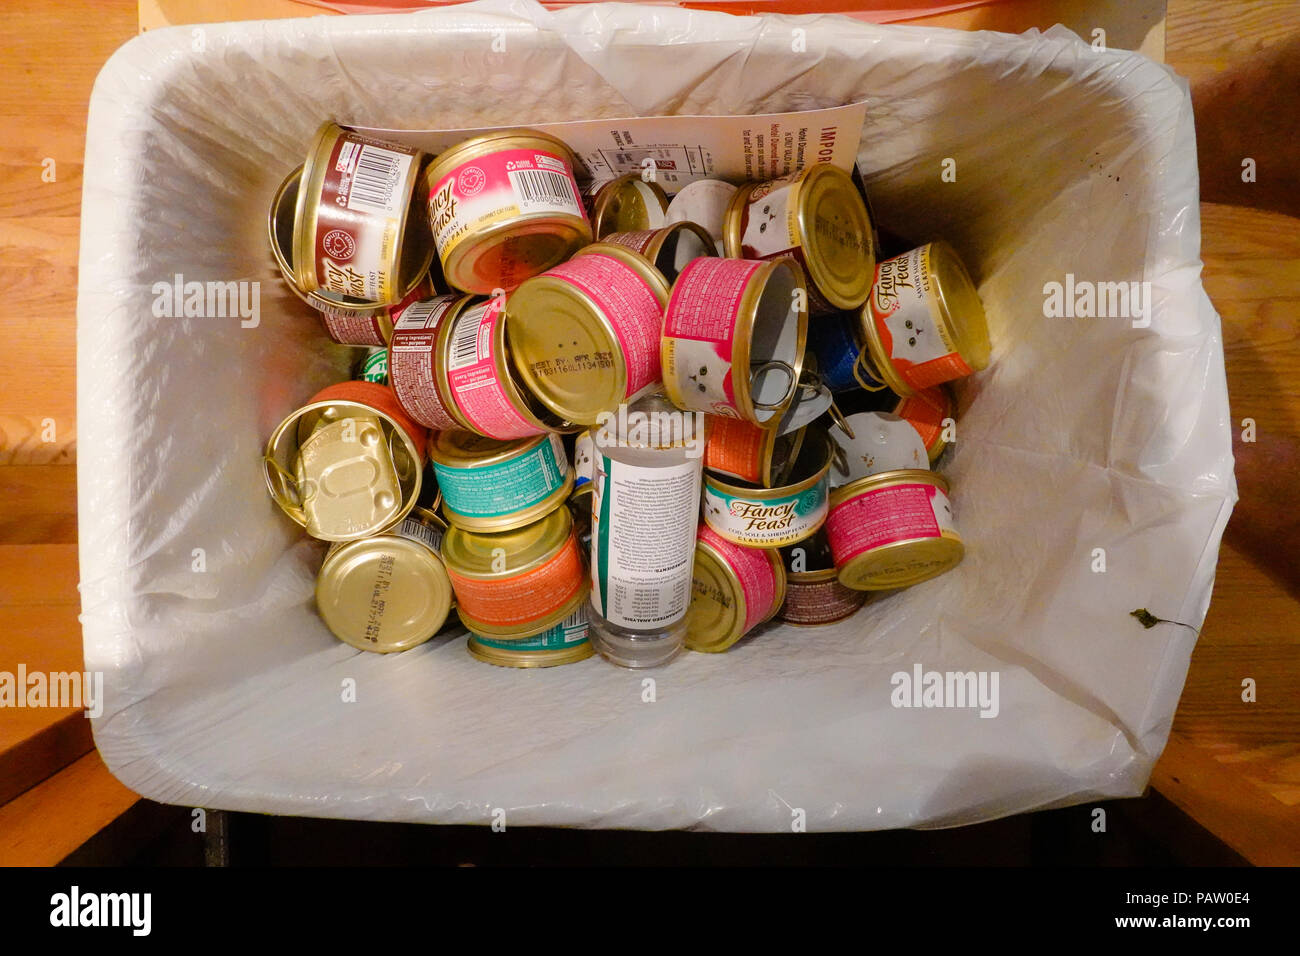 Empty cat food cans in a kitchen recycling bin. - Stock Image